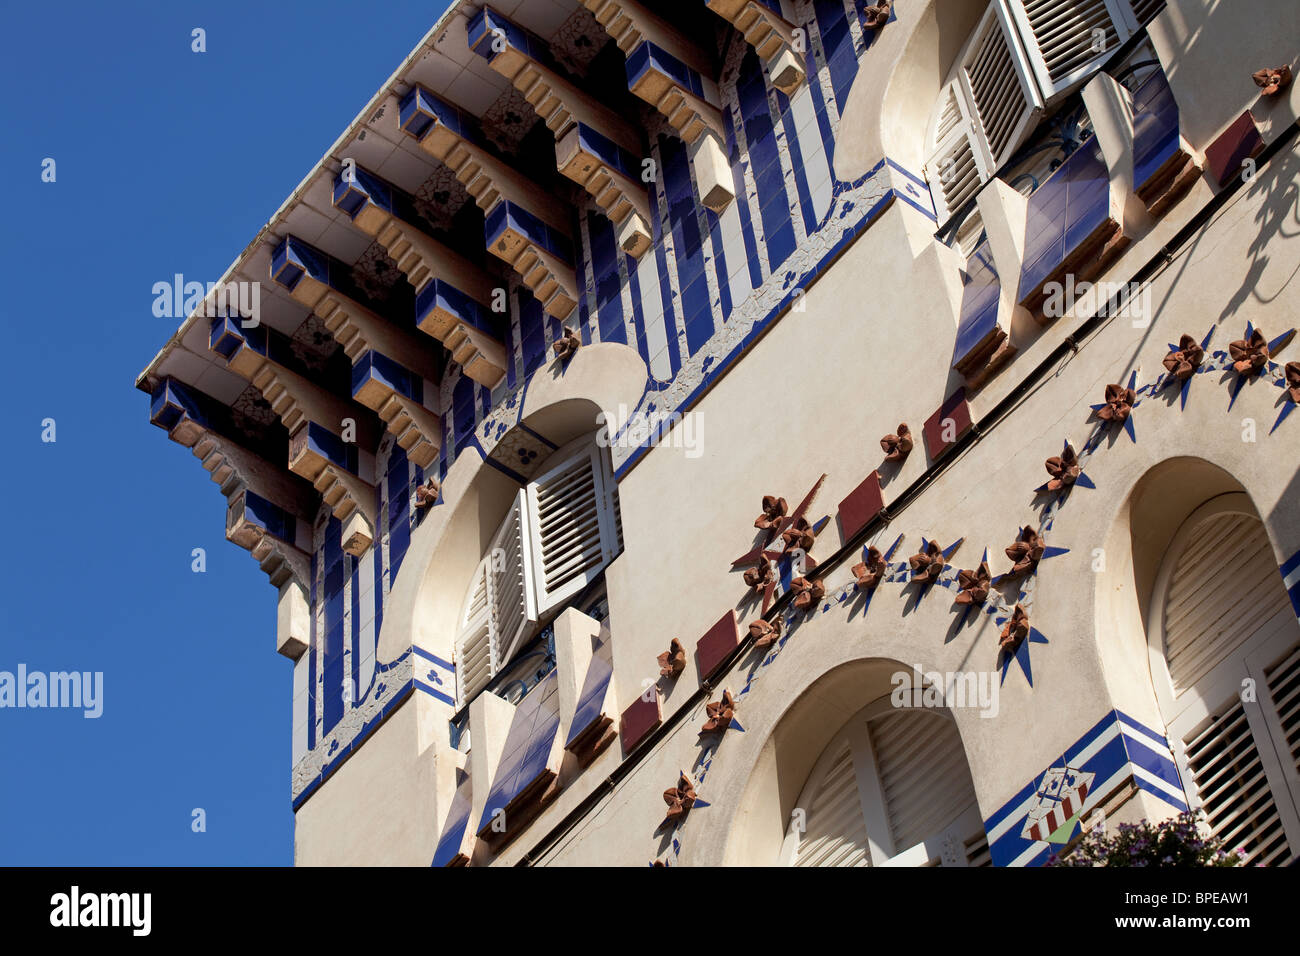 Barcelona Art nouveau architecture, detail in Sant Pol de Mar, Spain - Stock Image